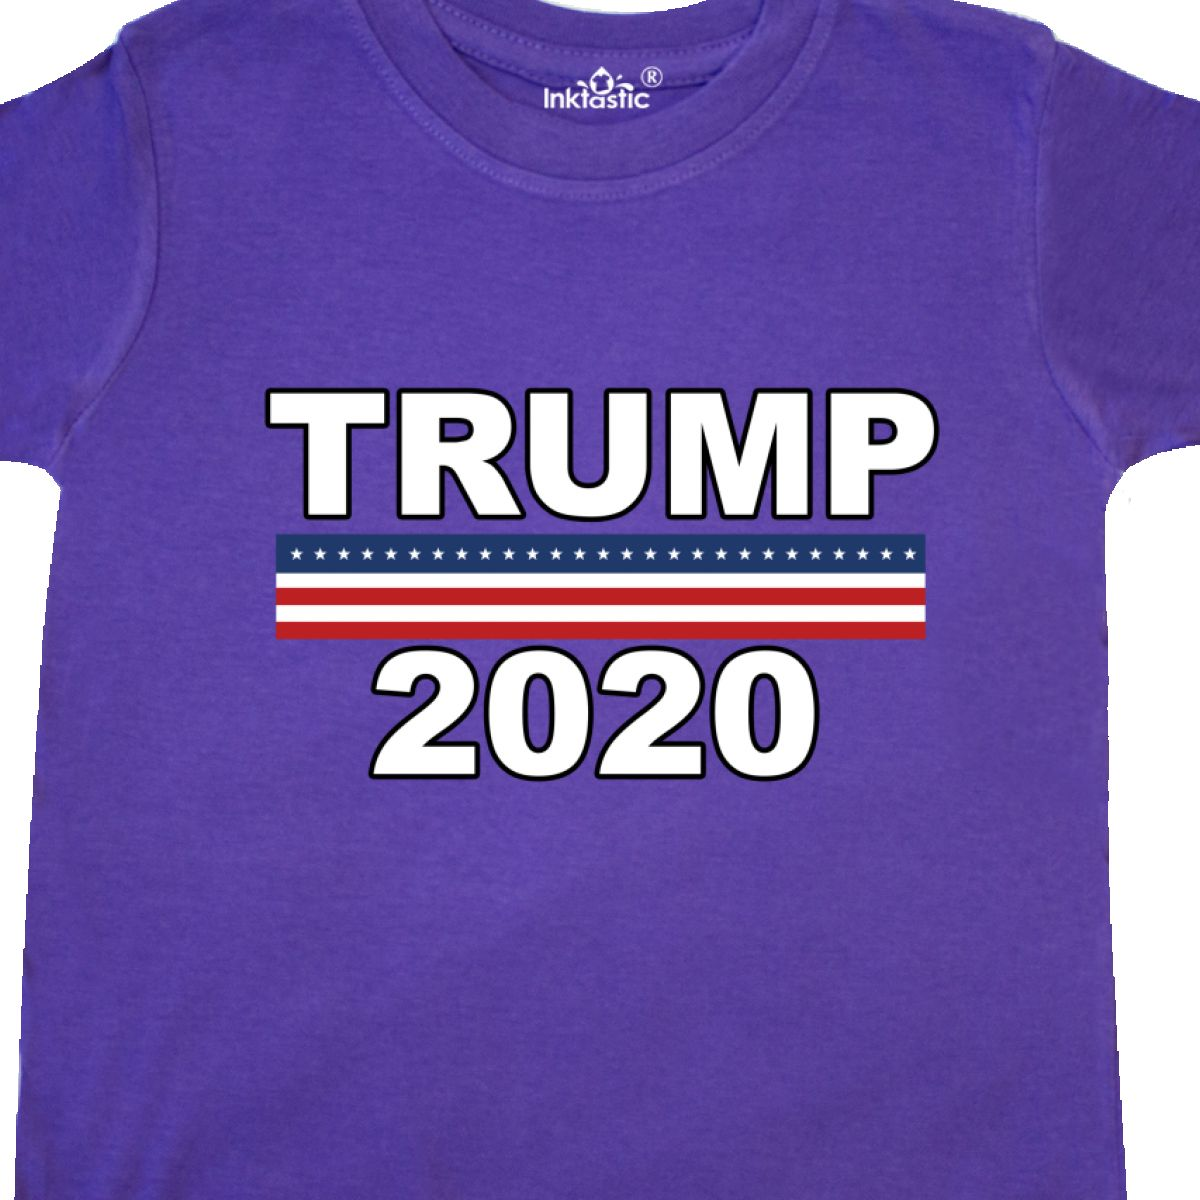 Inktastic Trump 2020 Toddler T-Shirt Donald Political Politics Unisex Gift Child